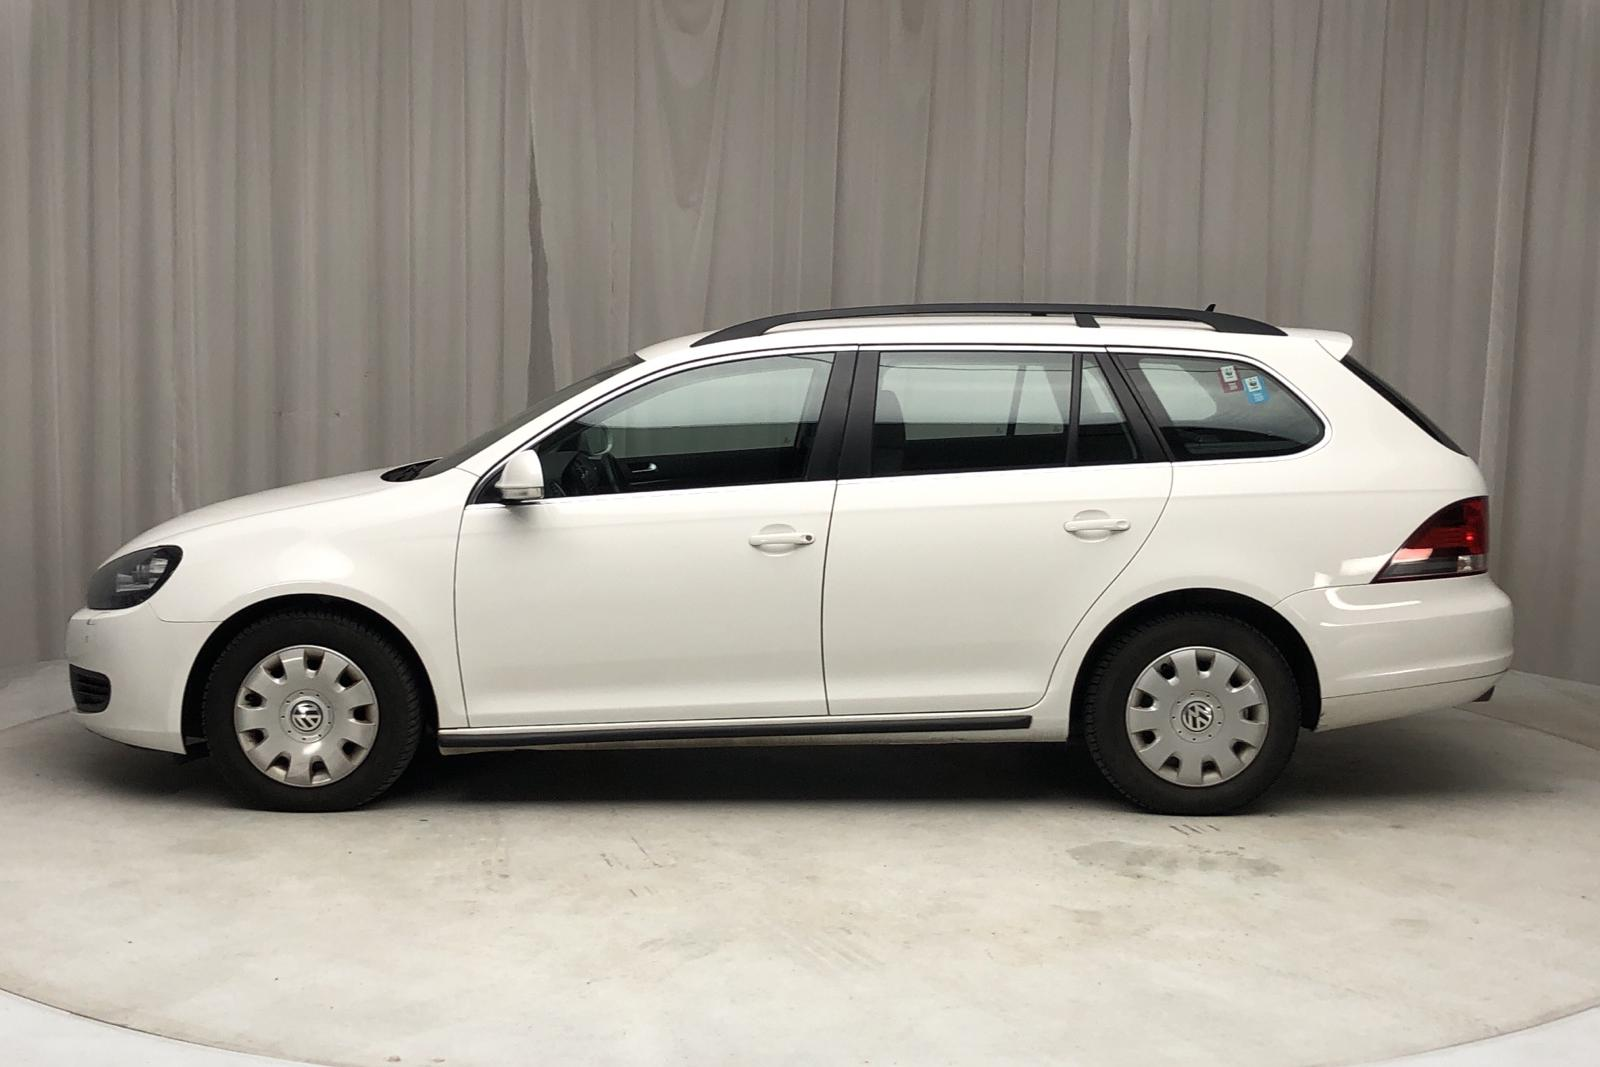 VW Golf VI 1.6 TDI BlueMotion Technology Variant (105hk) - 16 337 mil - Automat - vit - 2012